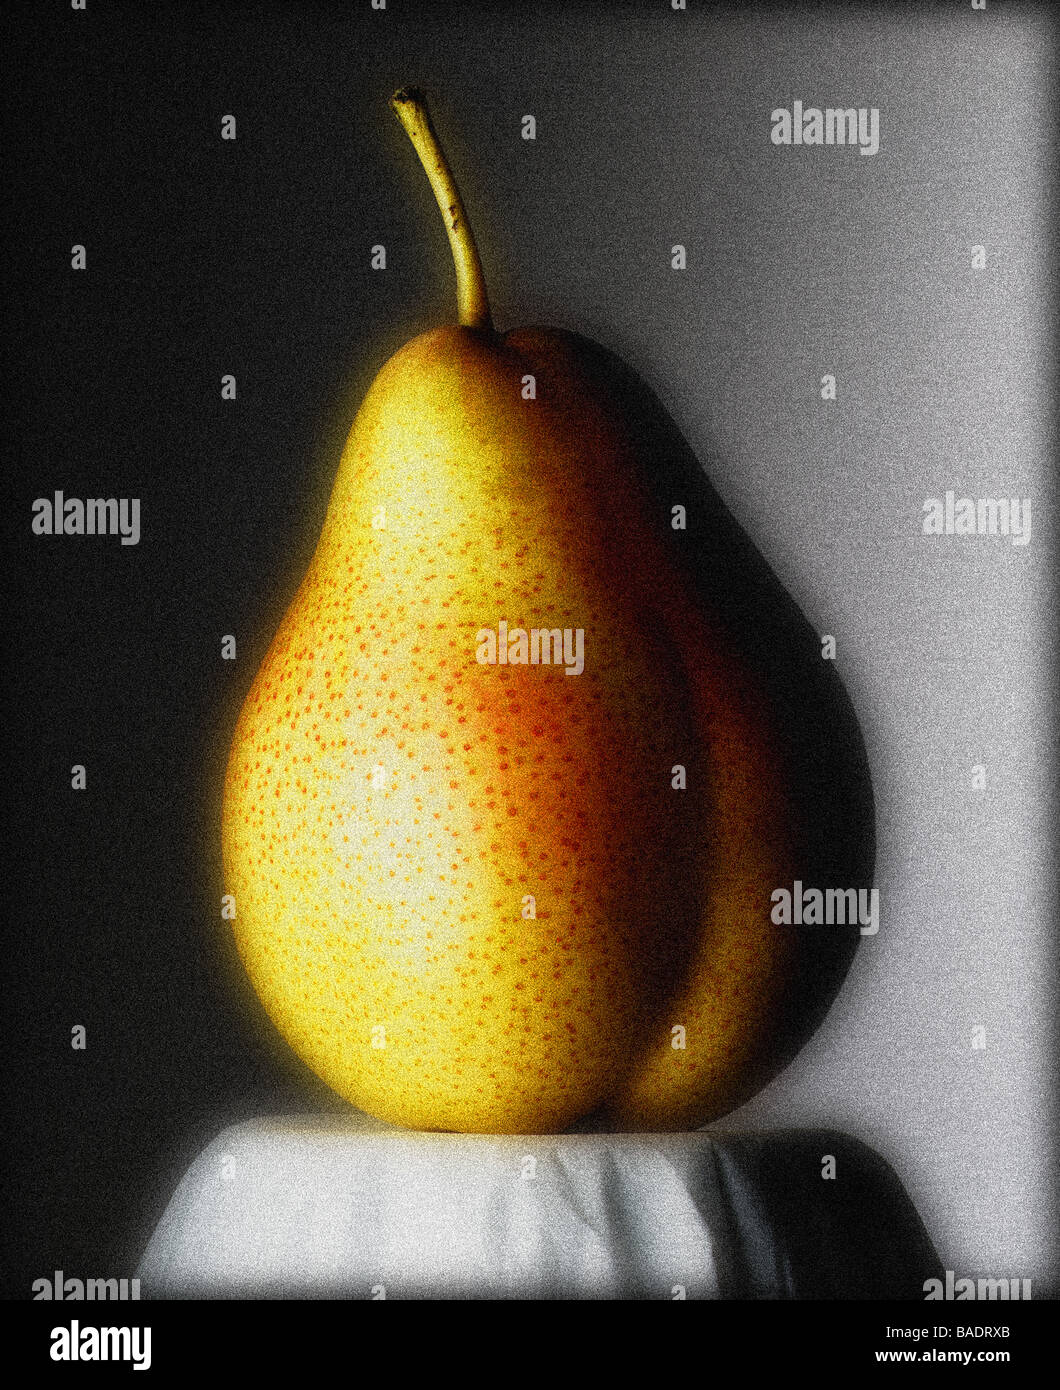 Portrait of a pear - Stock Image